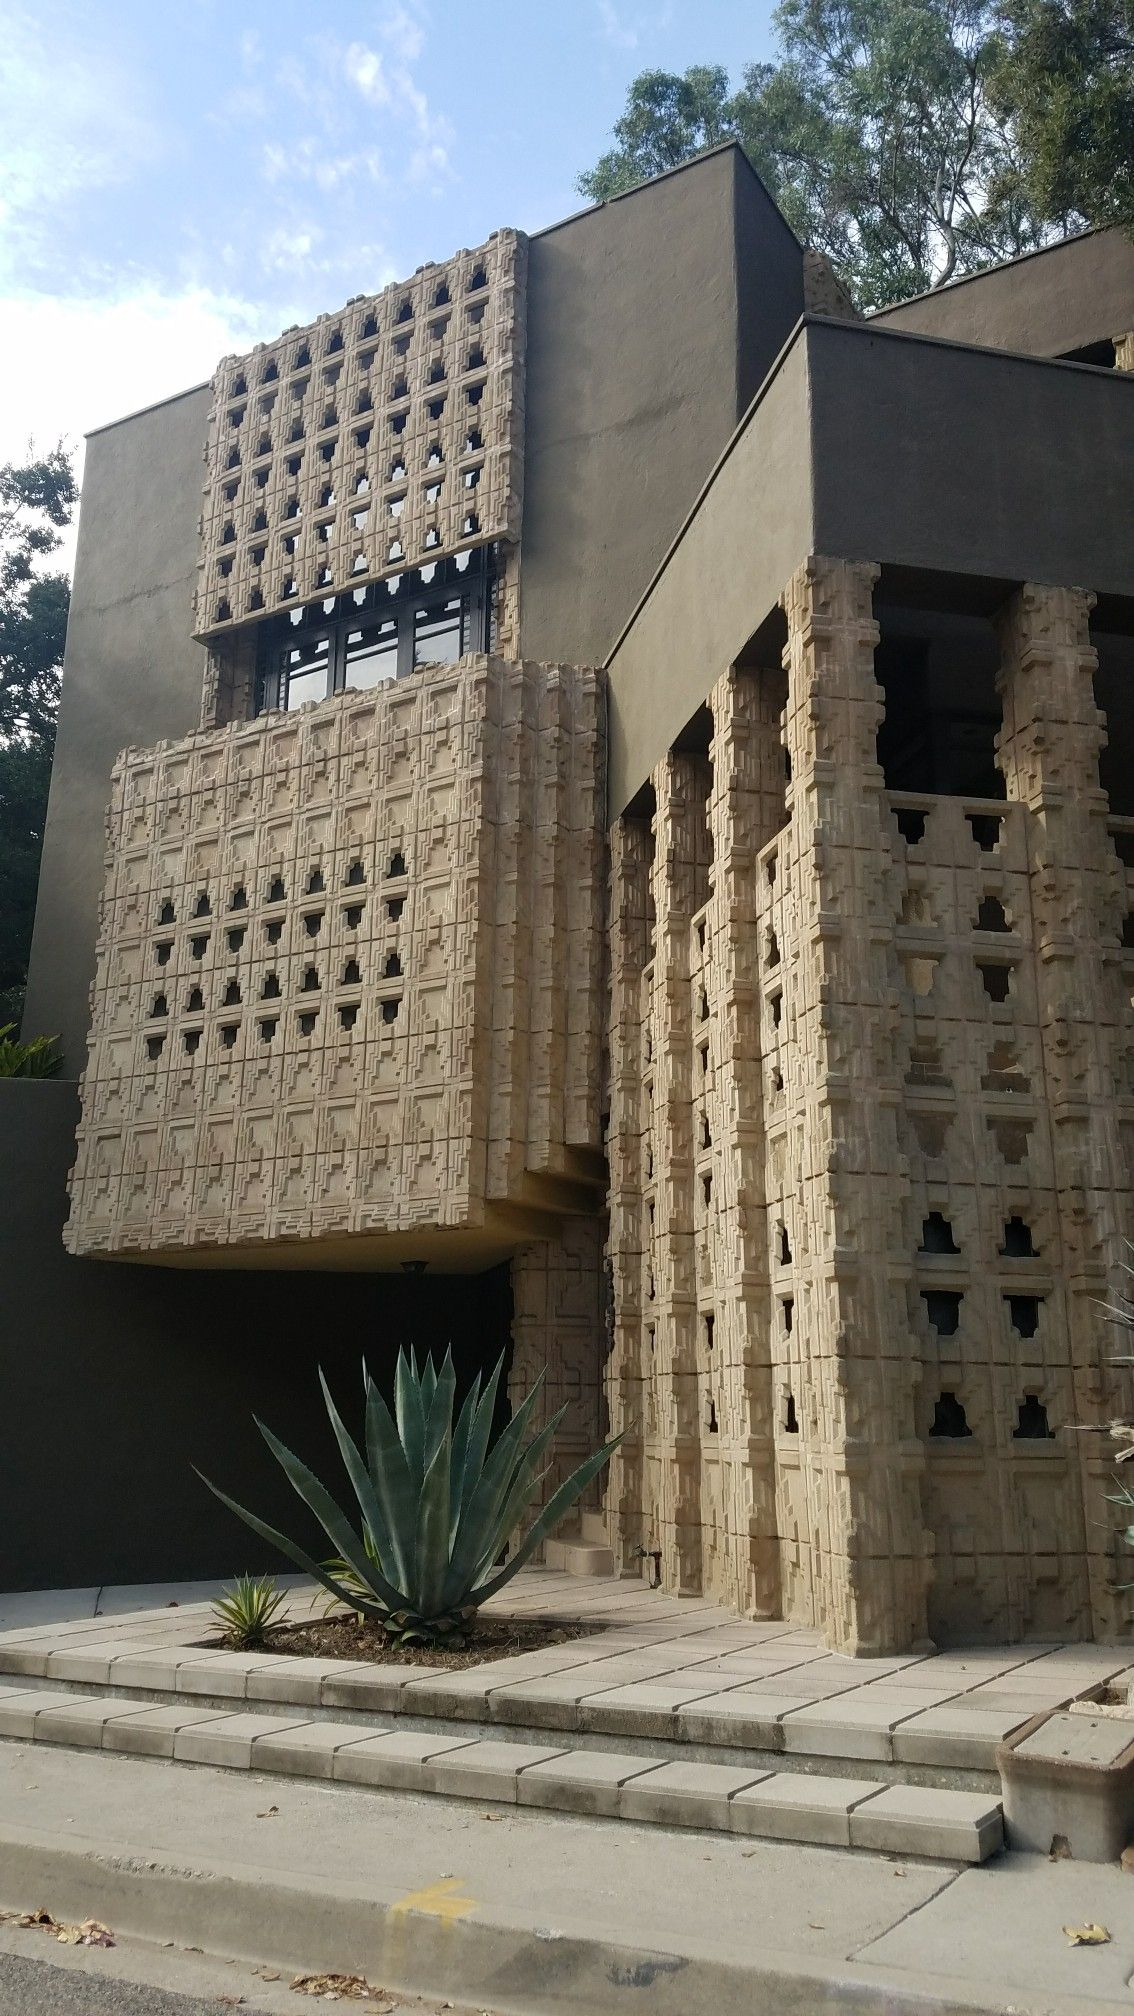 Who Did Frank Lloyd Wright Design The Above House For : frank, lloyd, wright, design, above, house, Derby, House, Glendale,, Lloyd, Wright, 1926., Frank, Wright., Photo, Buildings,, Architecture,